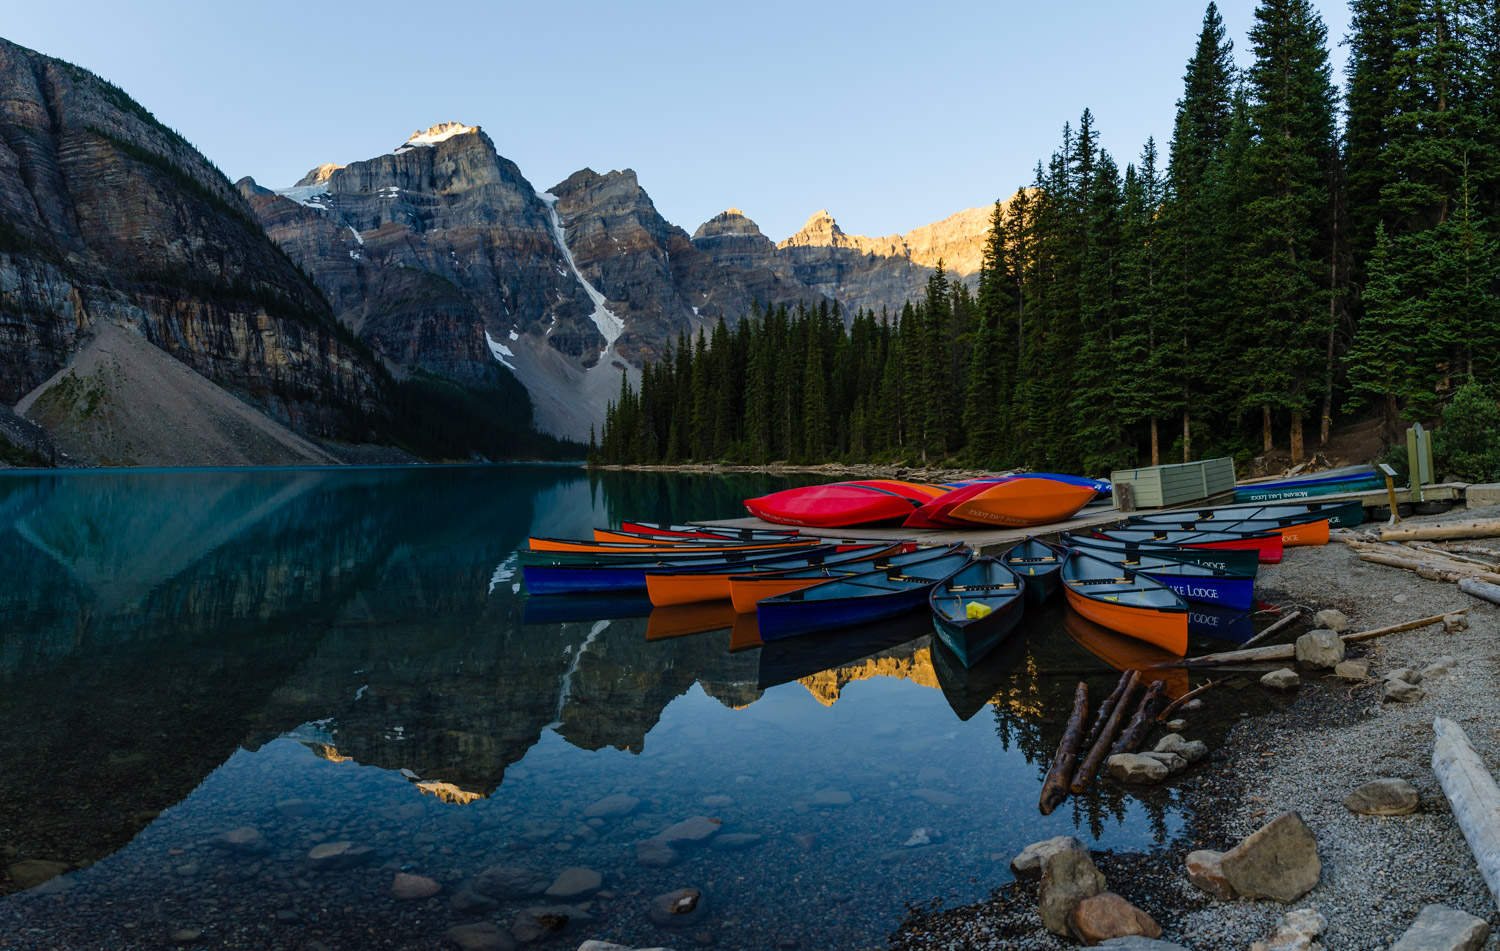 The famous Moraine Lake, at the start of our hike of Mount Temple.